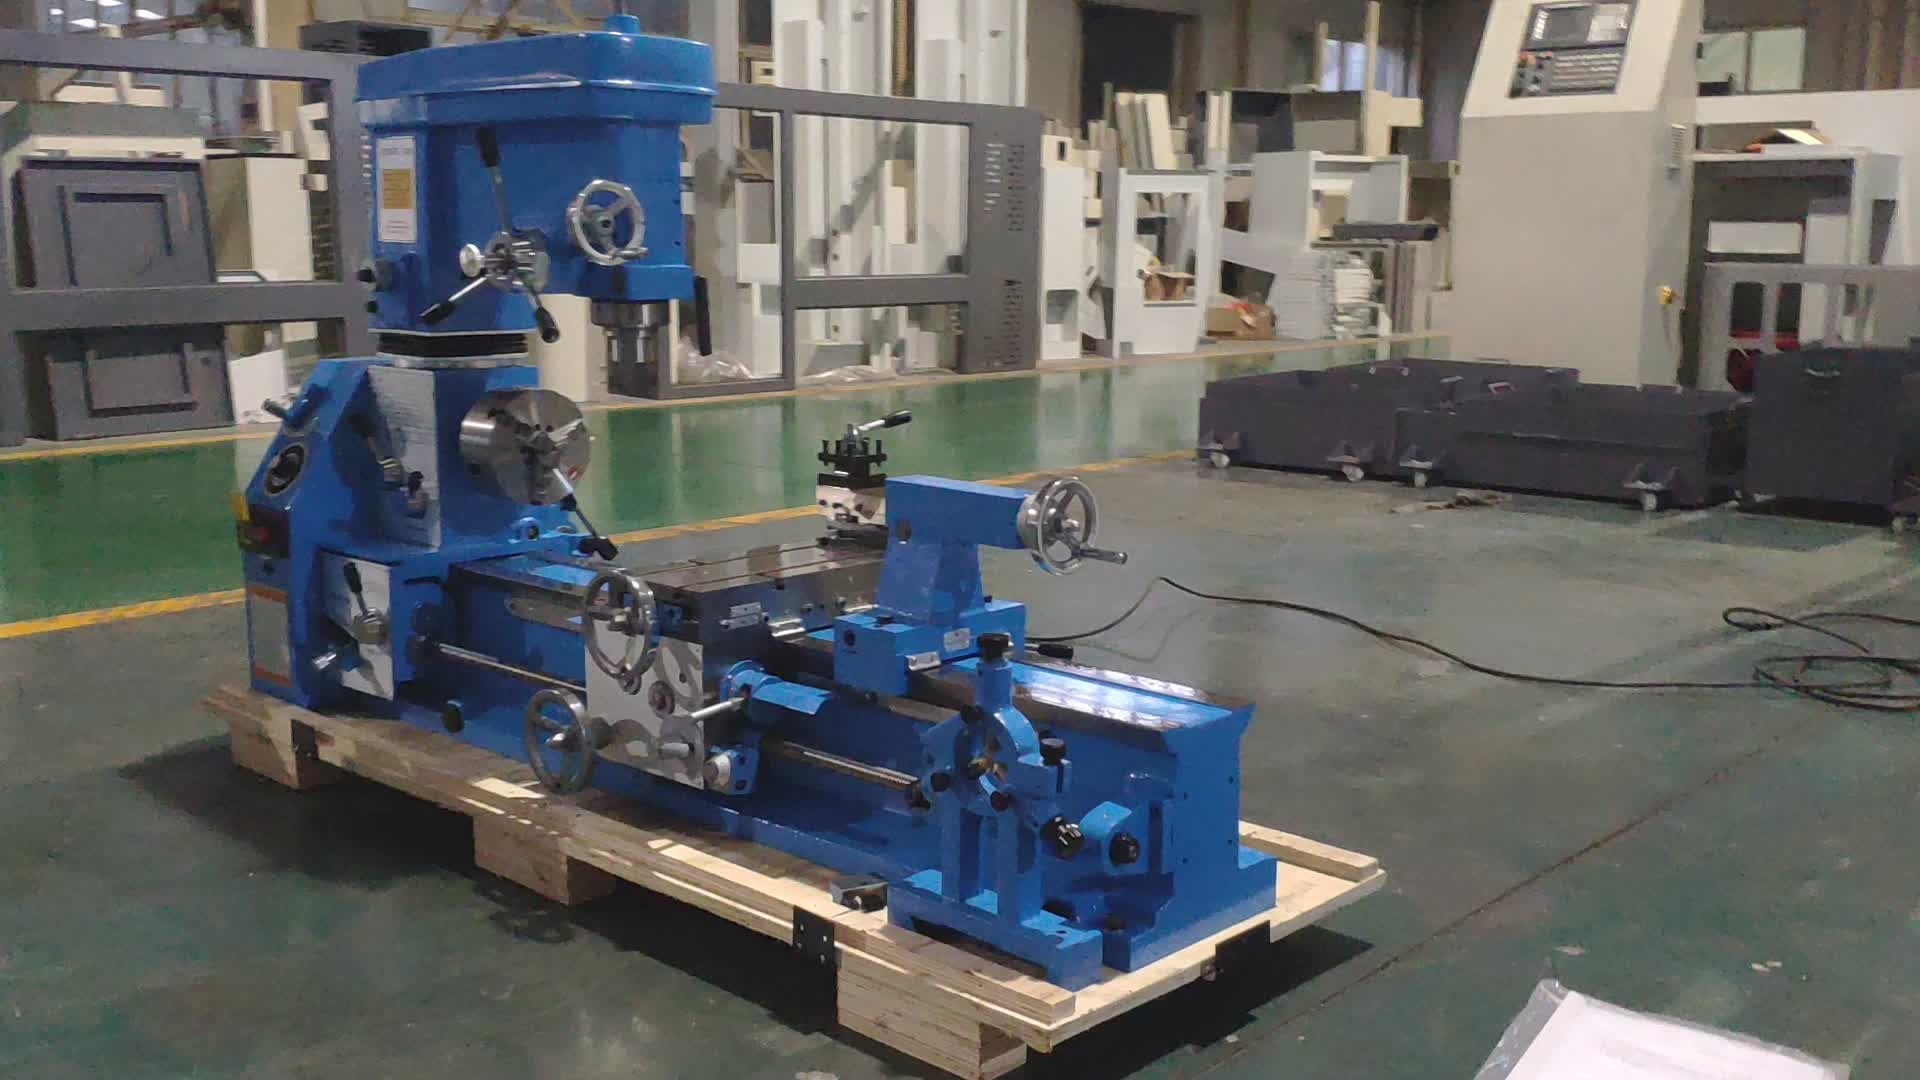 G1340 Combination Drilling Milling Lathe 3 in 1 lathe mill combo machine metal lathe small Granite